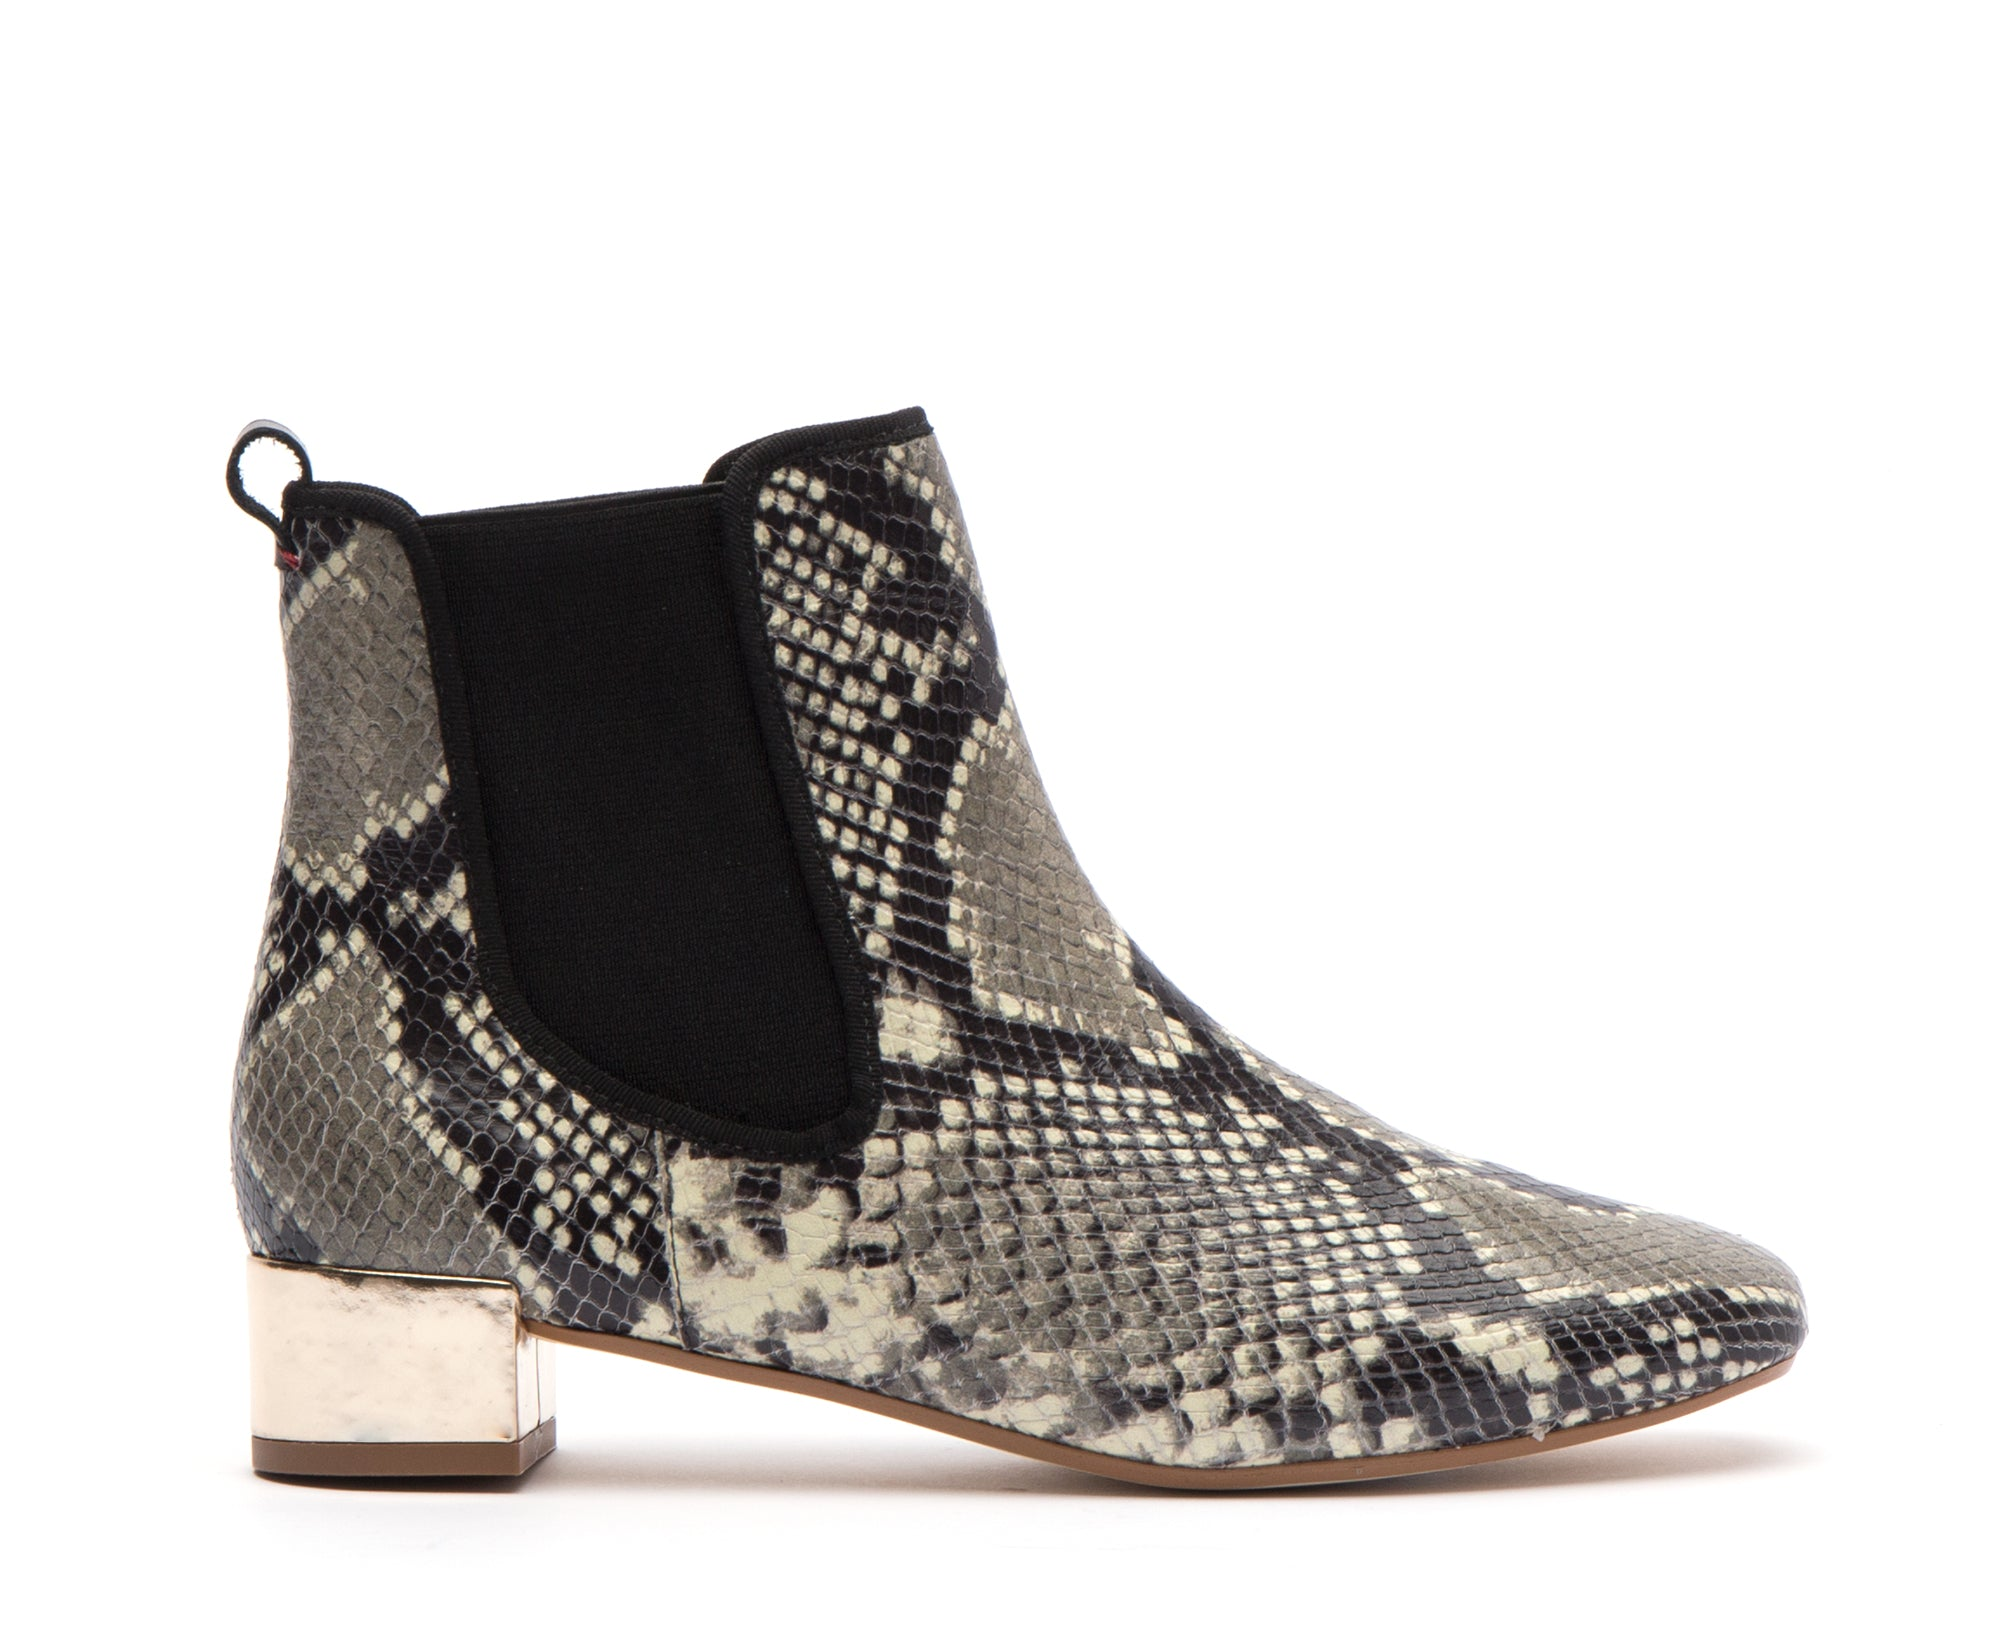 Milly Snake Leather Boots